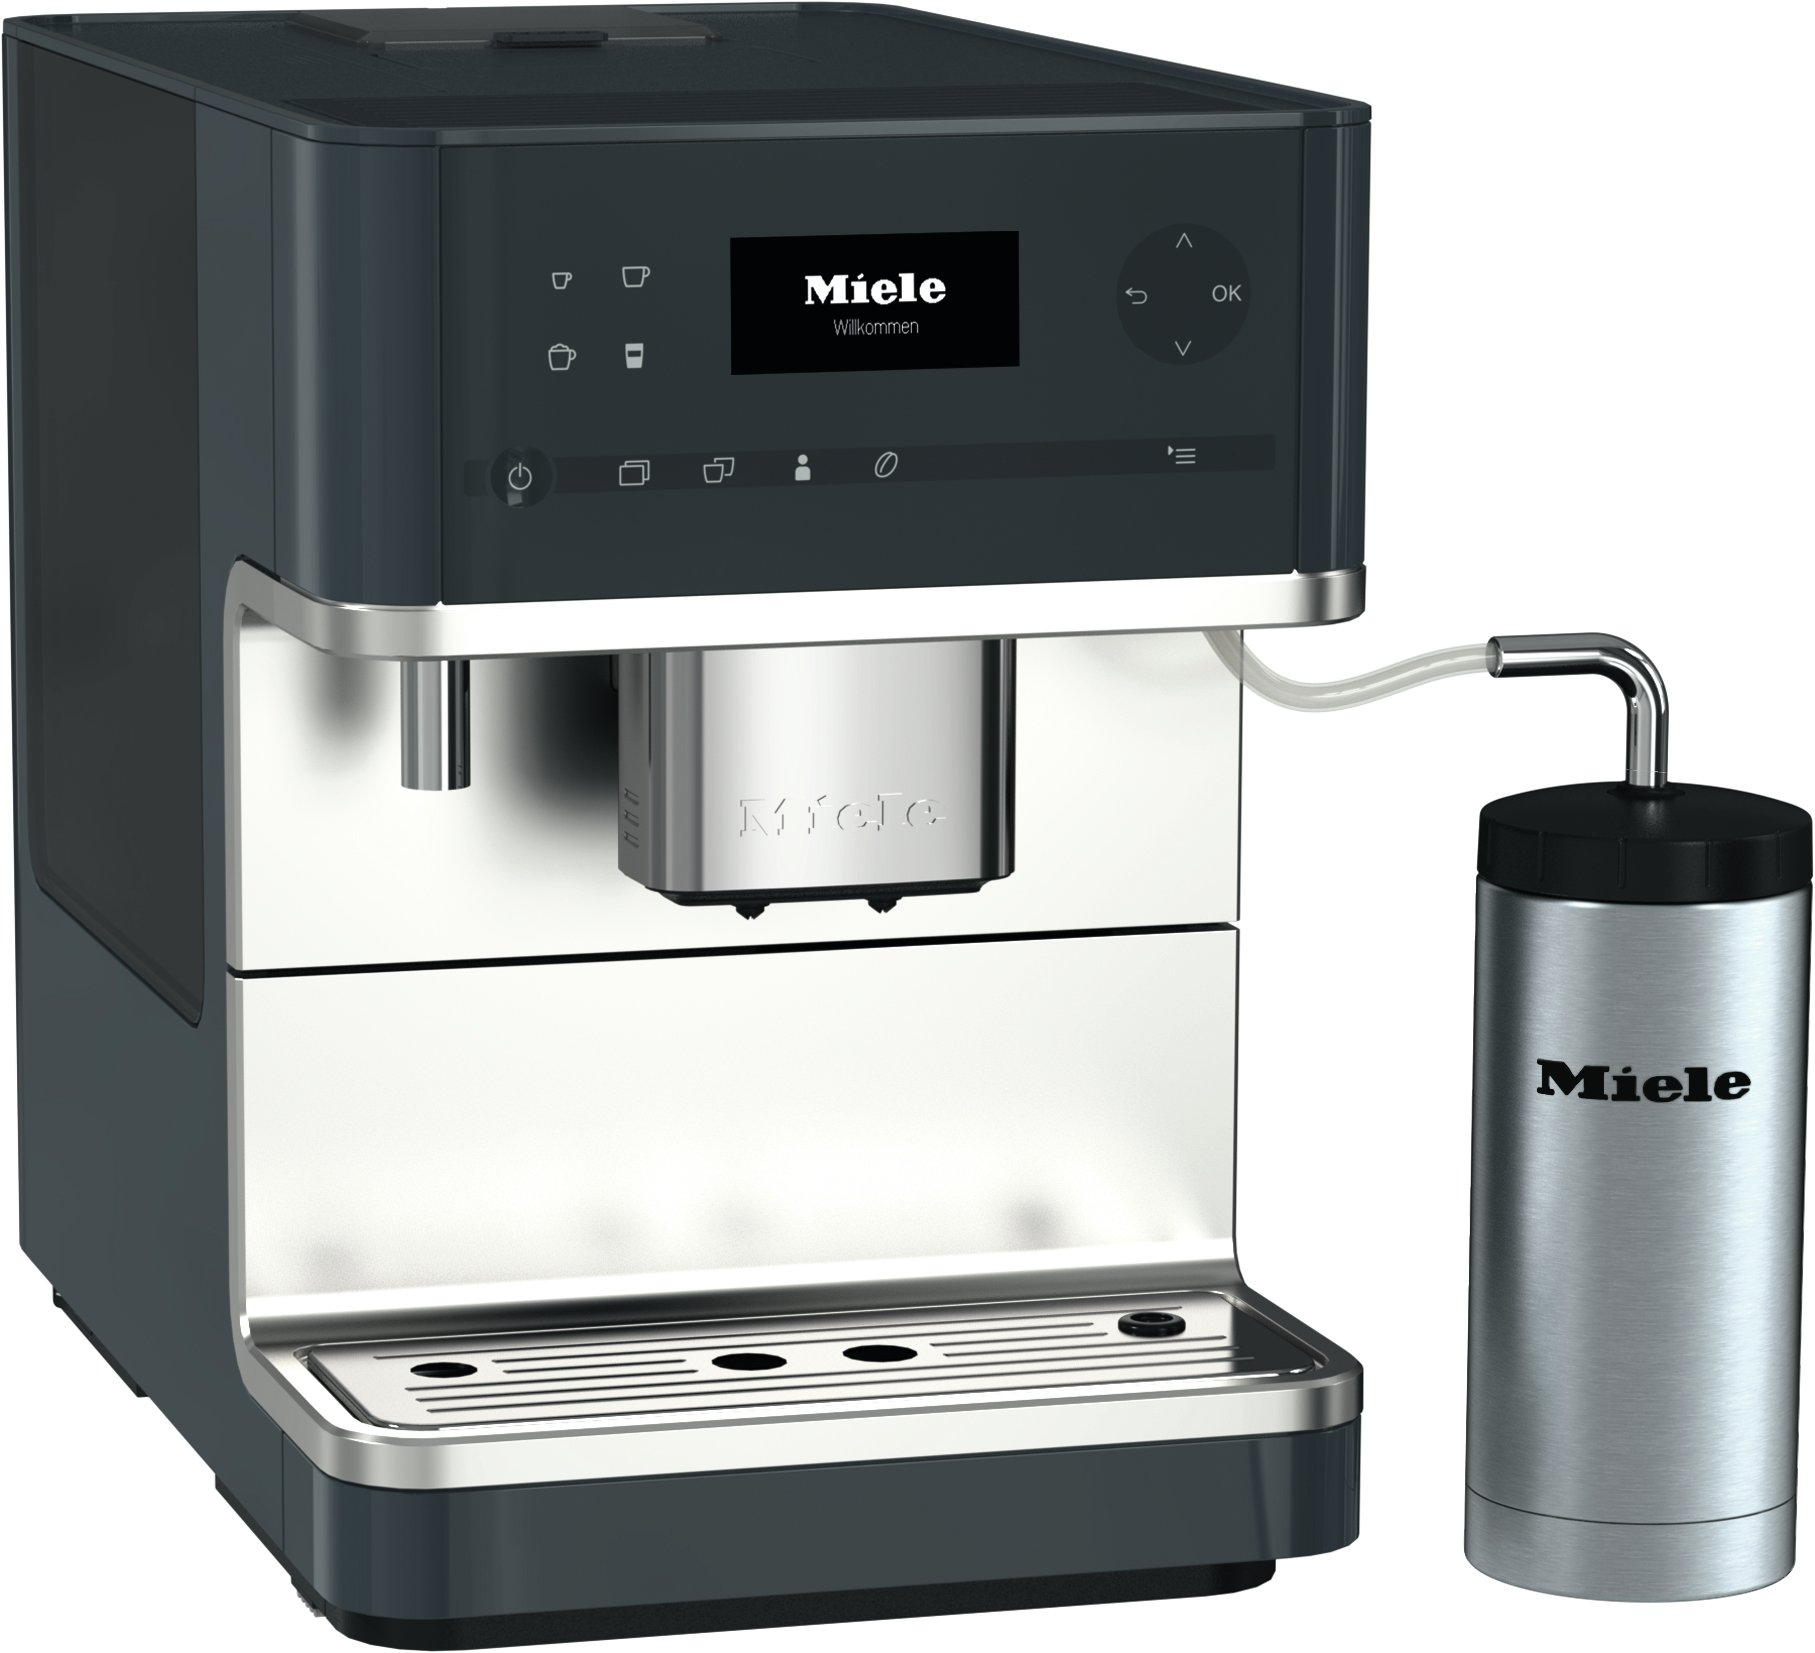 CM6310 Countertop Coffee System in Black by Miele